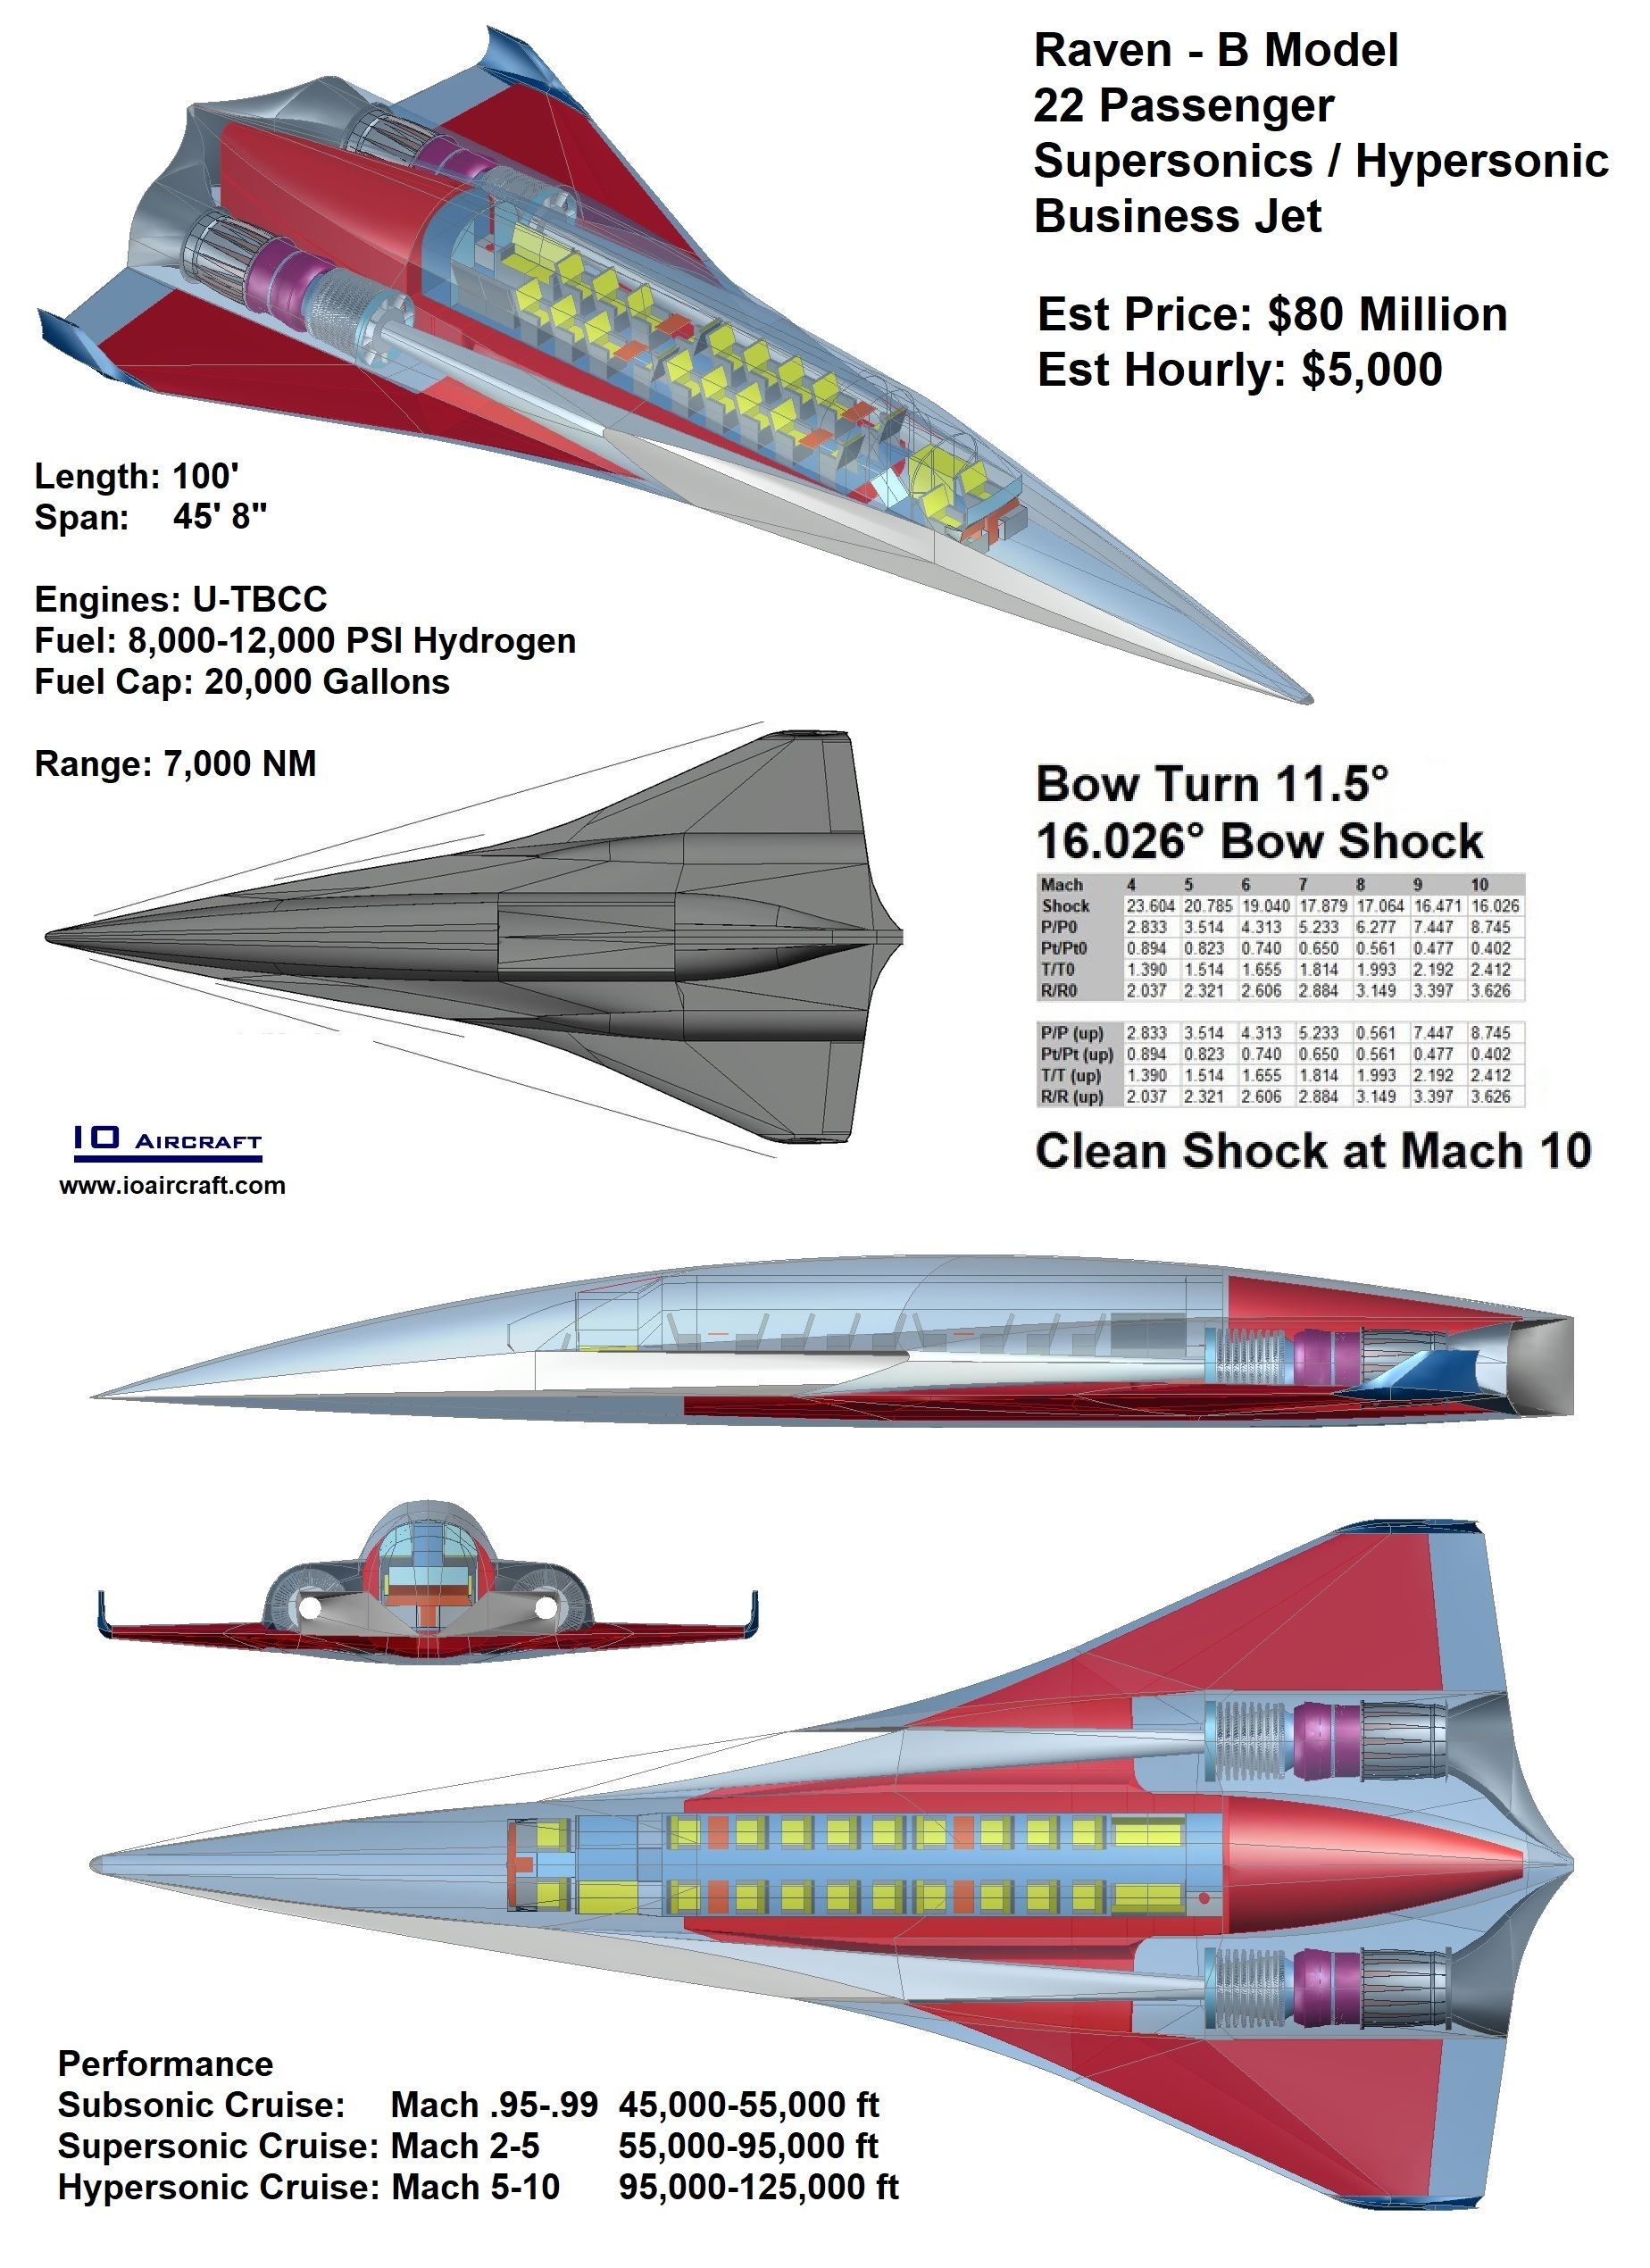 Raven B Model Mach 8 10 Supersonic Hypersonic Business Jet Iteration 6 Integration Aircraft Supersonic Aircraft Jet